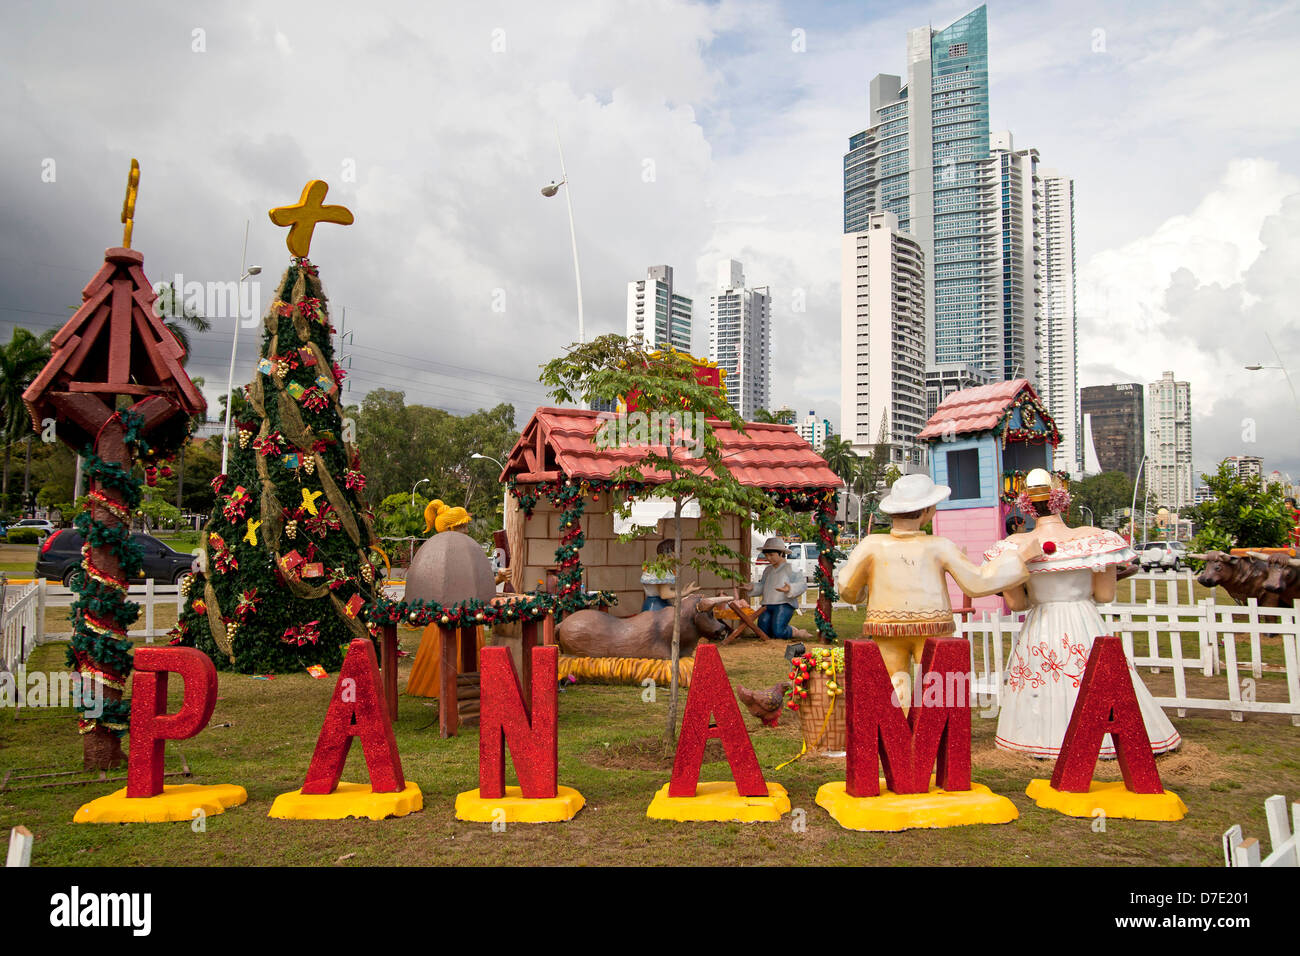 Christmas decoration with a nativity scene and lettering Panama in ...